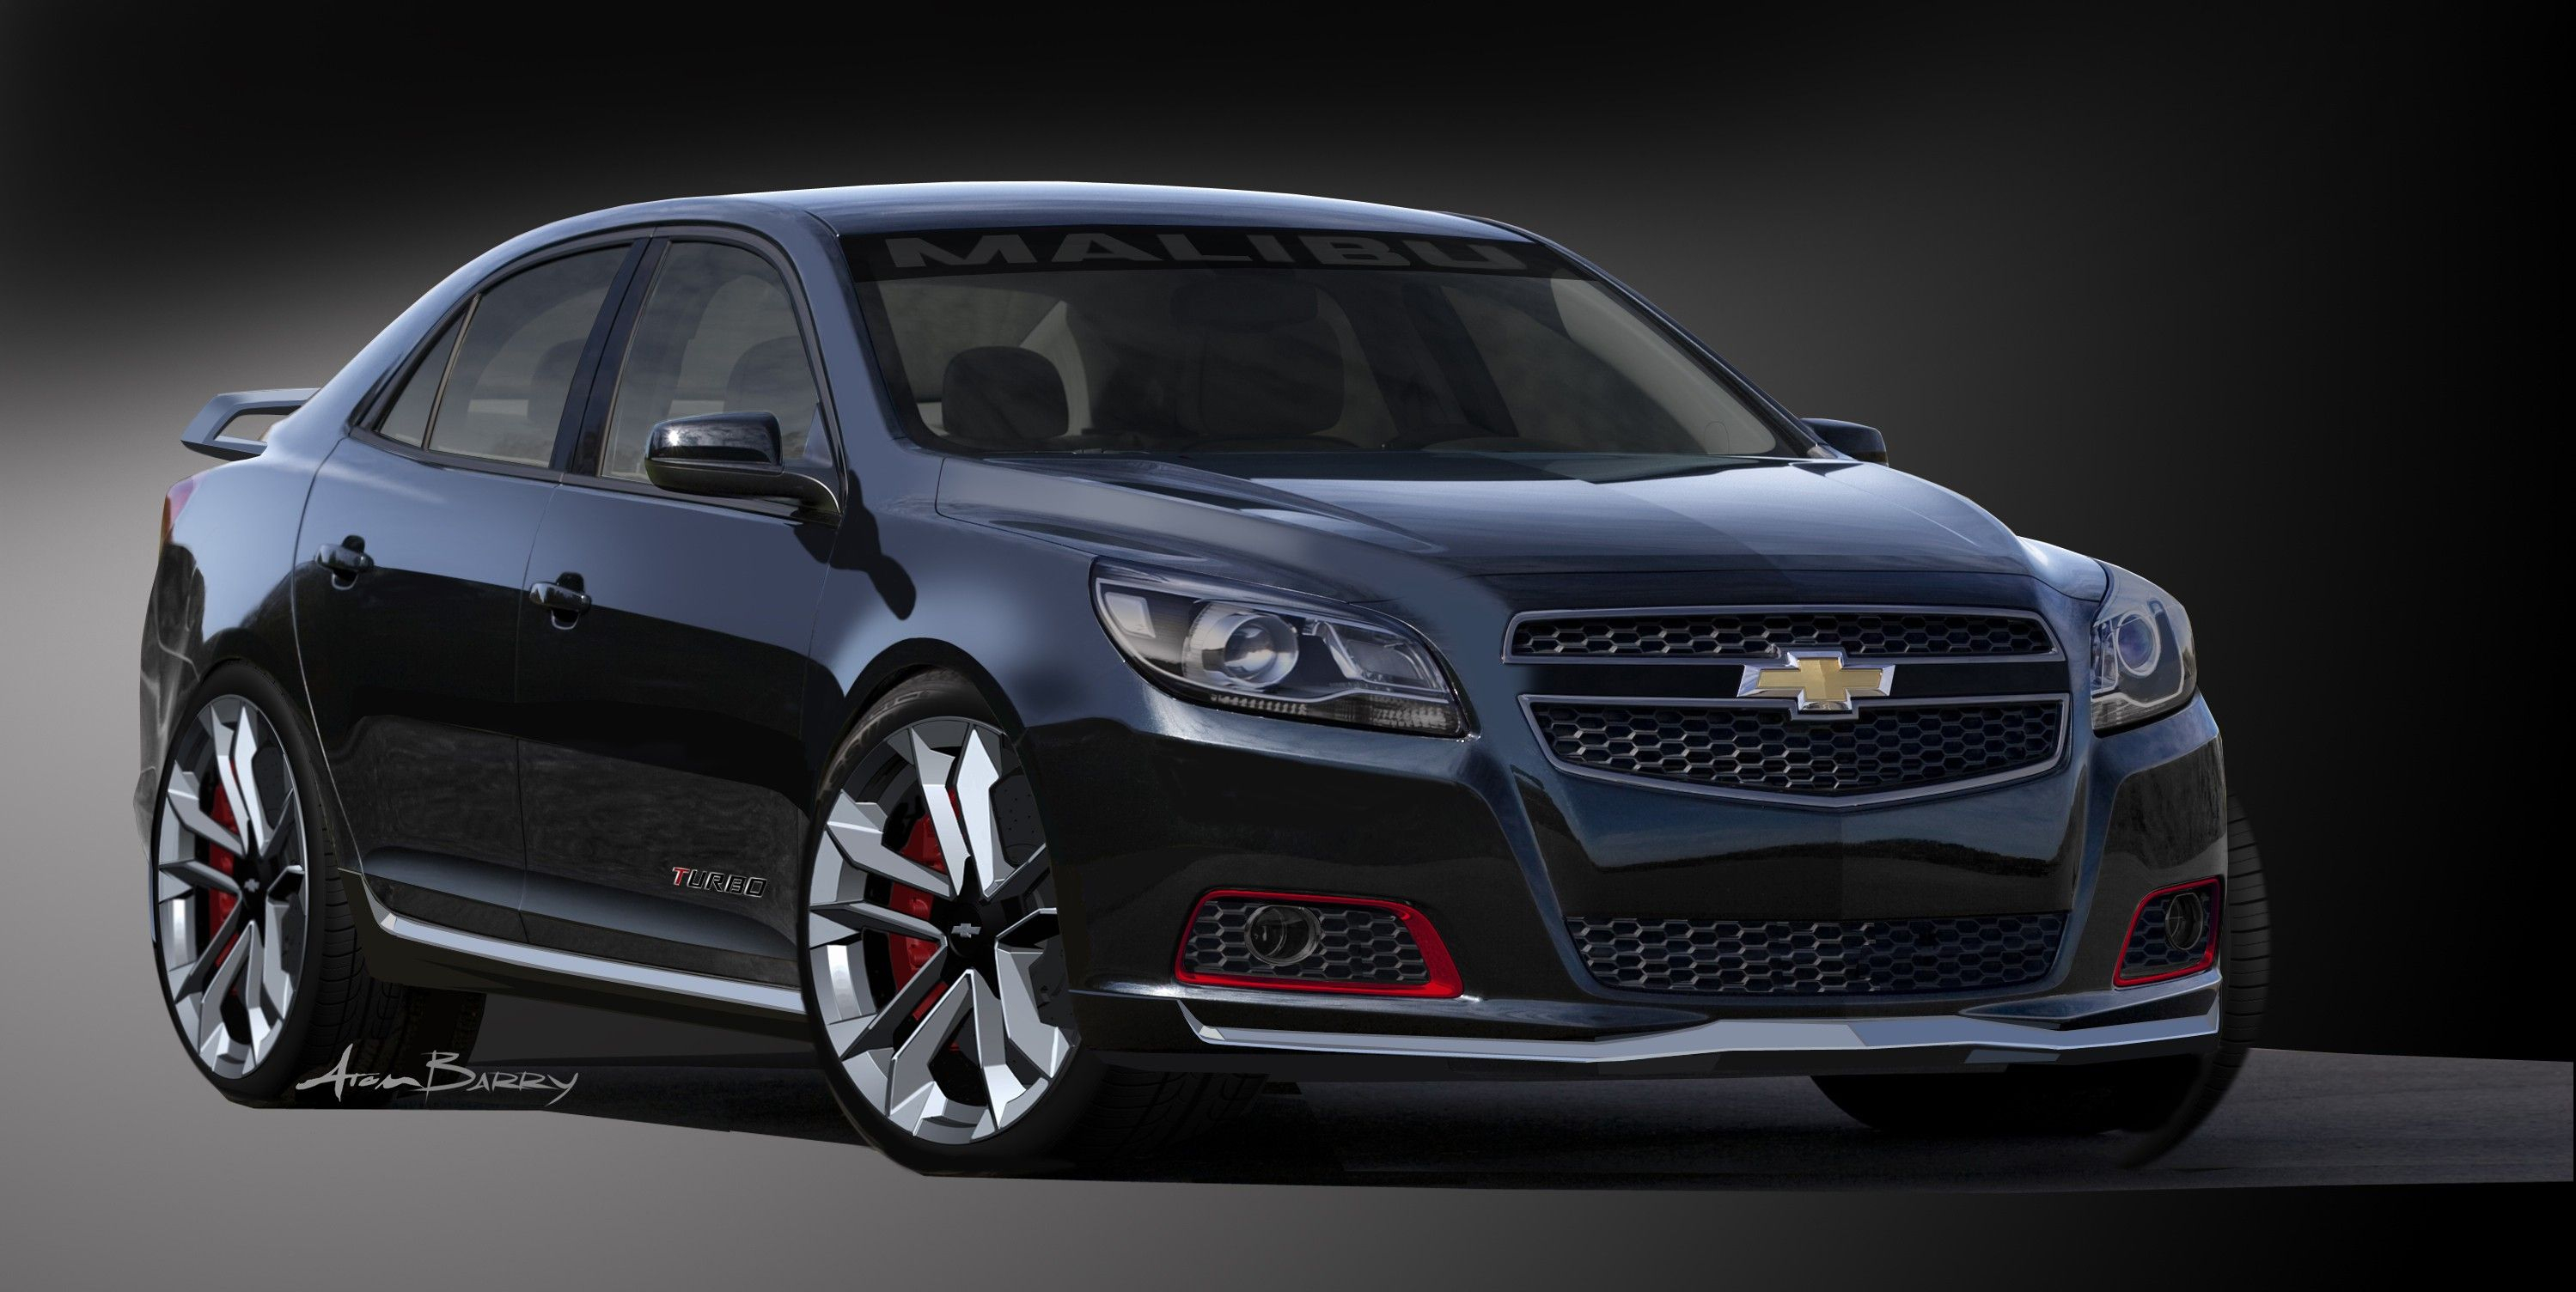 Chevy Cruze 2020 Review.Complete Car Info For 99 Best 2020 Chevrolet Cruze Price